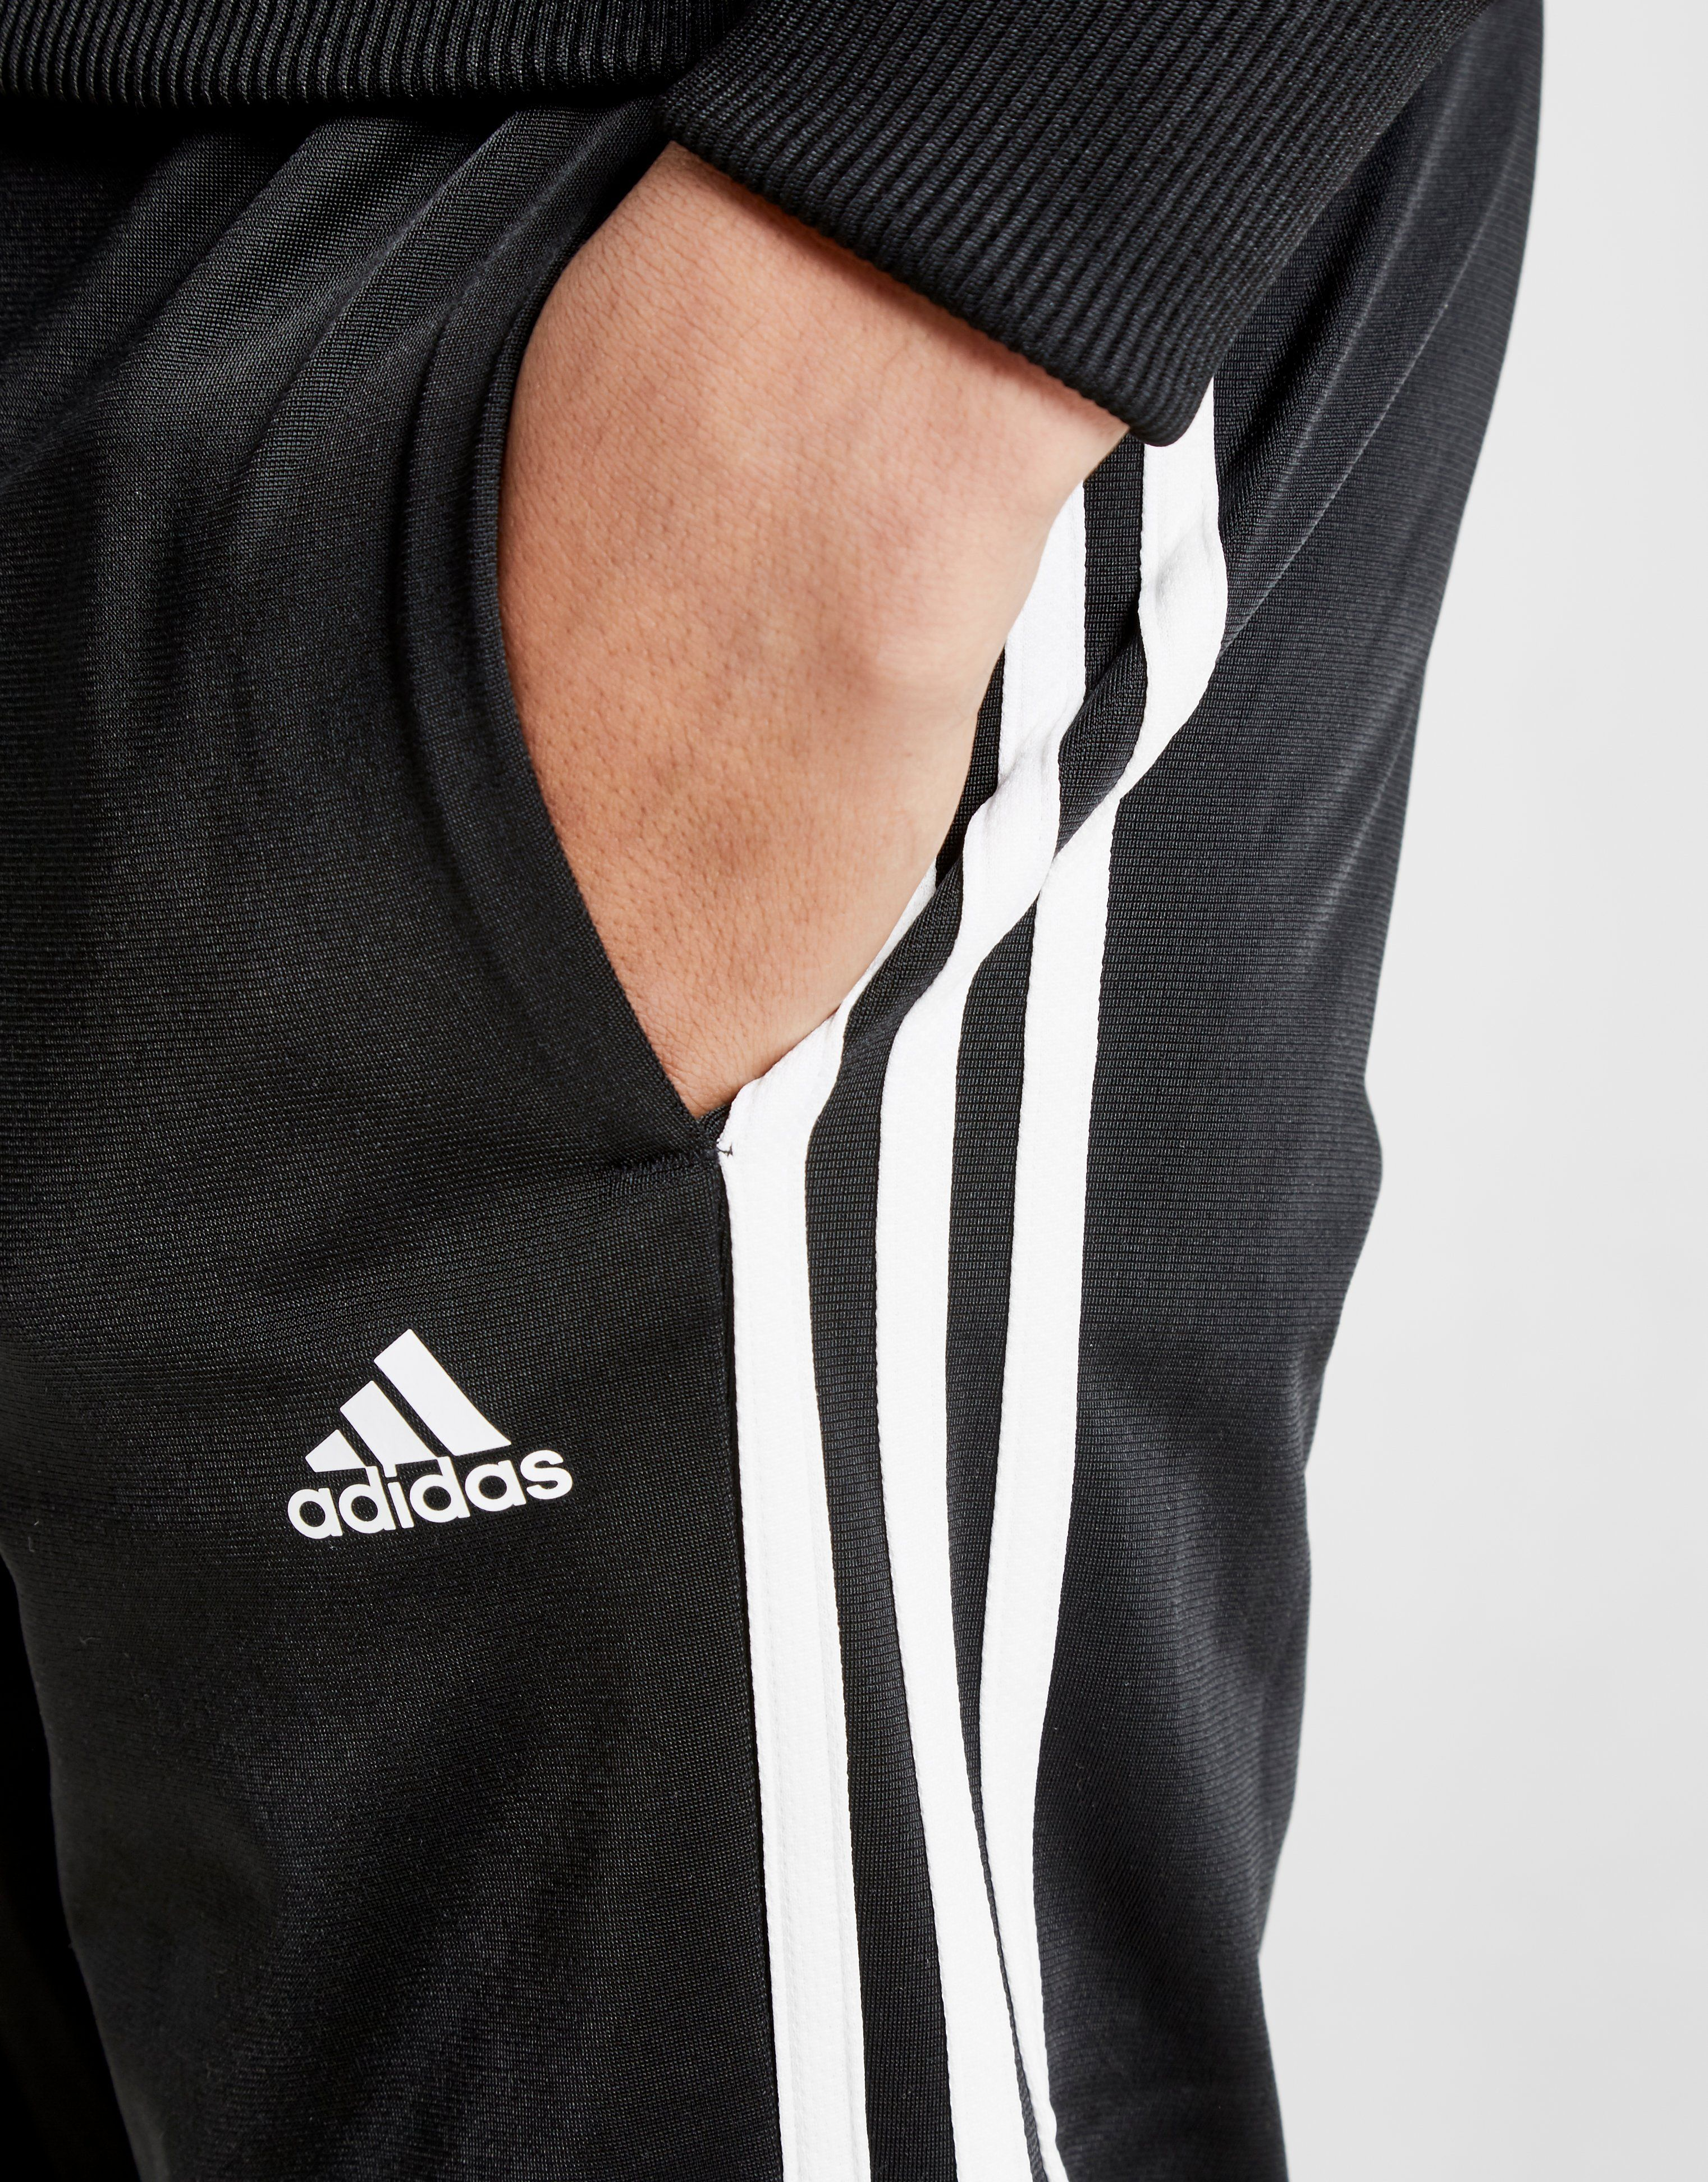 adidas Survêtement Tibero Junior